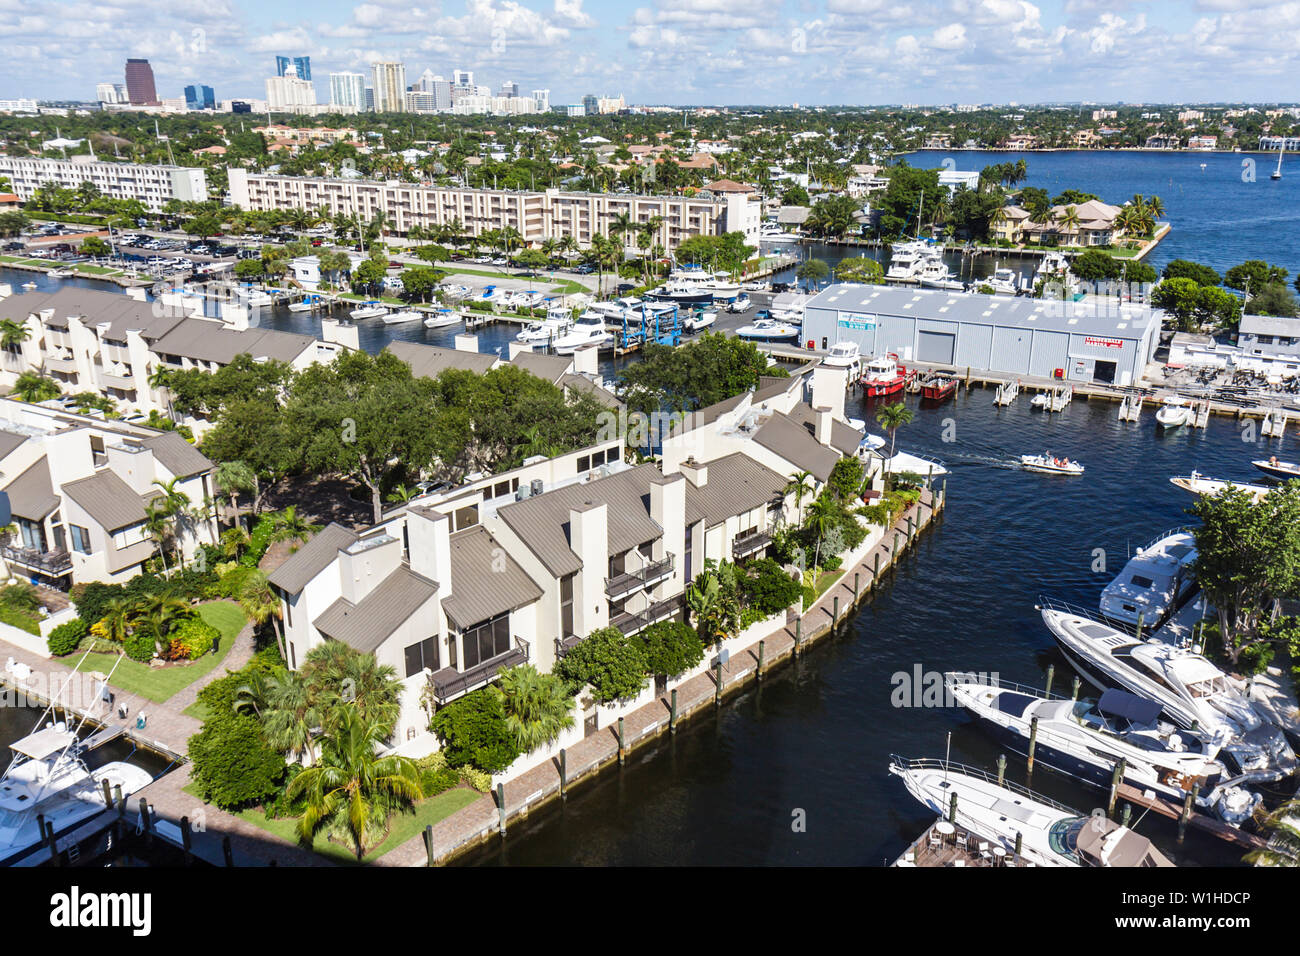 Fort Lauderdale Ft. Florida Hilton Fort Lauderdale Marina hotel view Intracoastal Waterway Seminole River Portside Yacht Club an - Stock Image